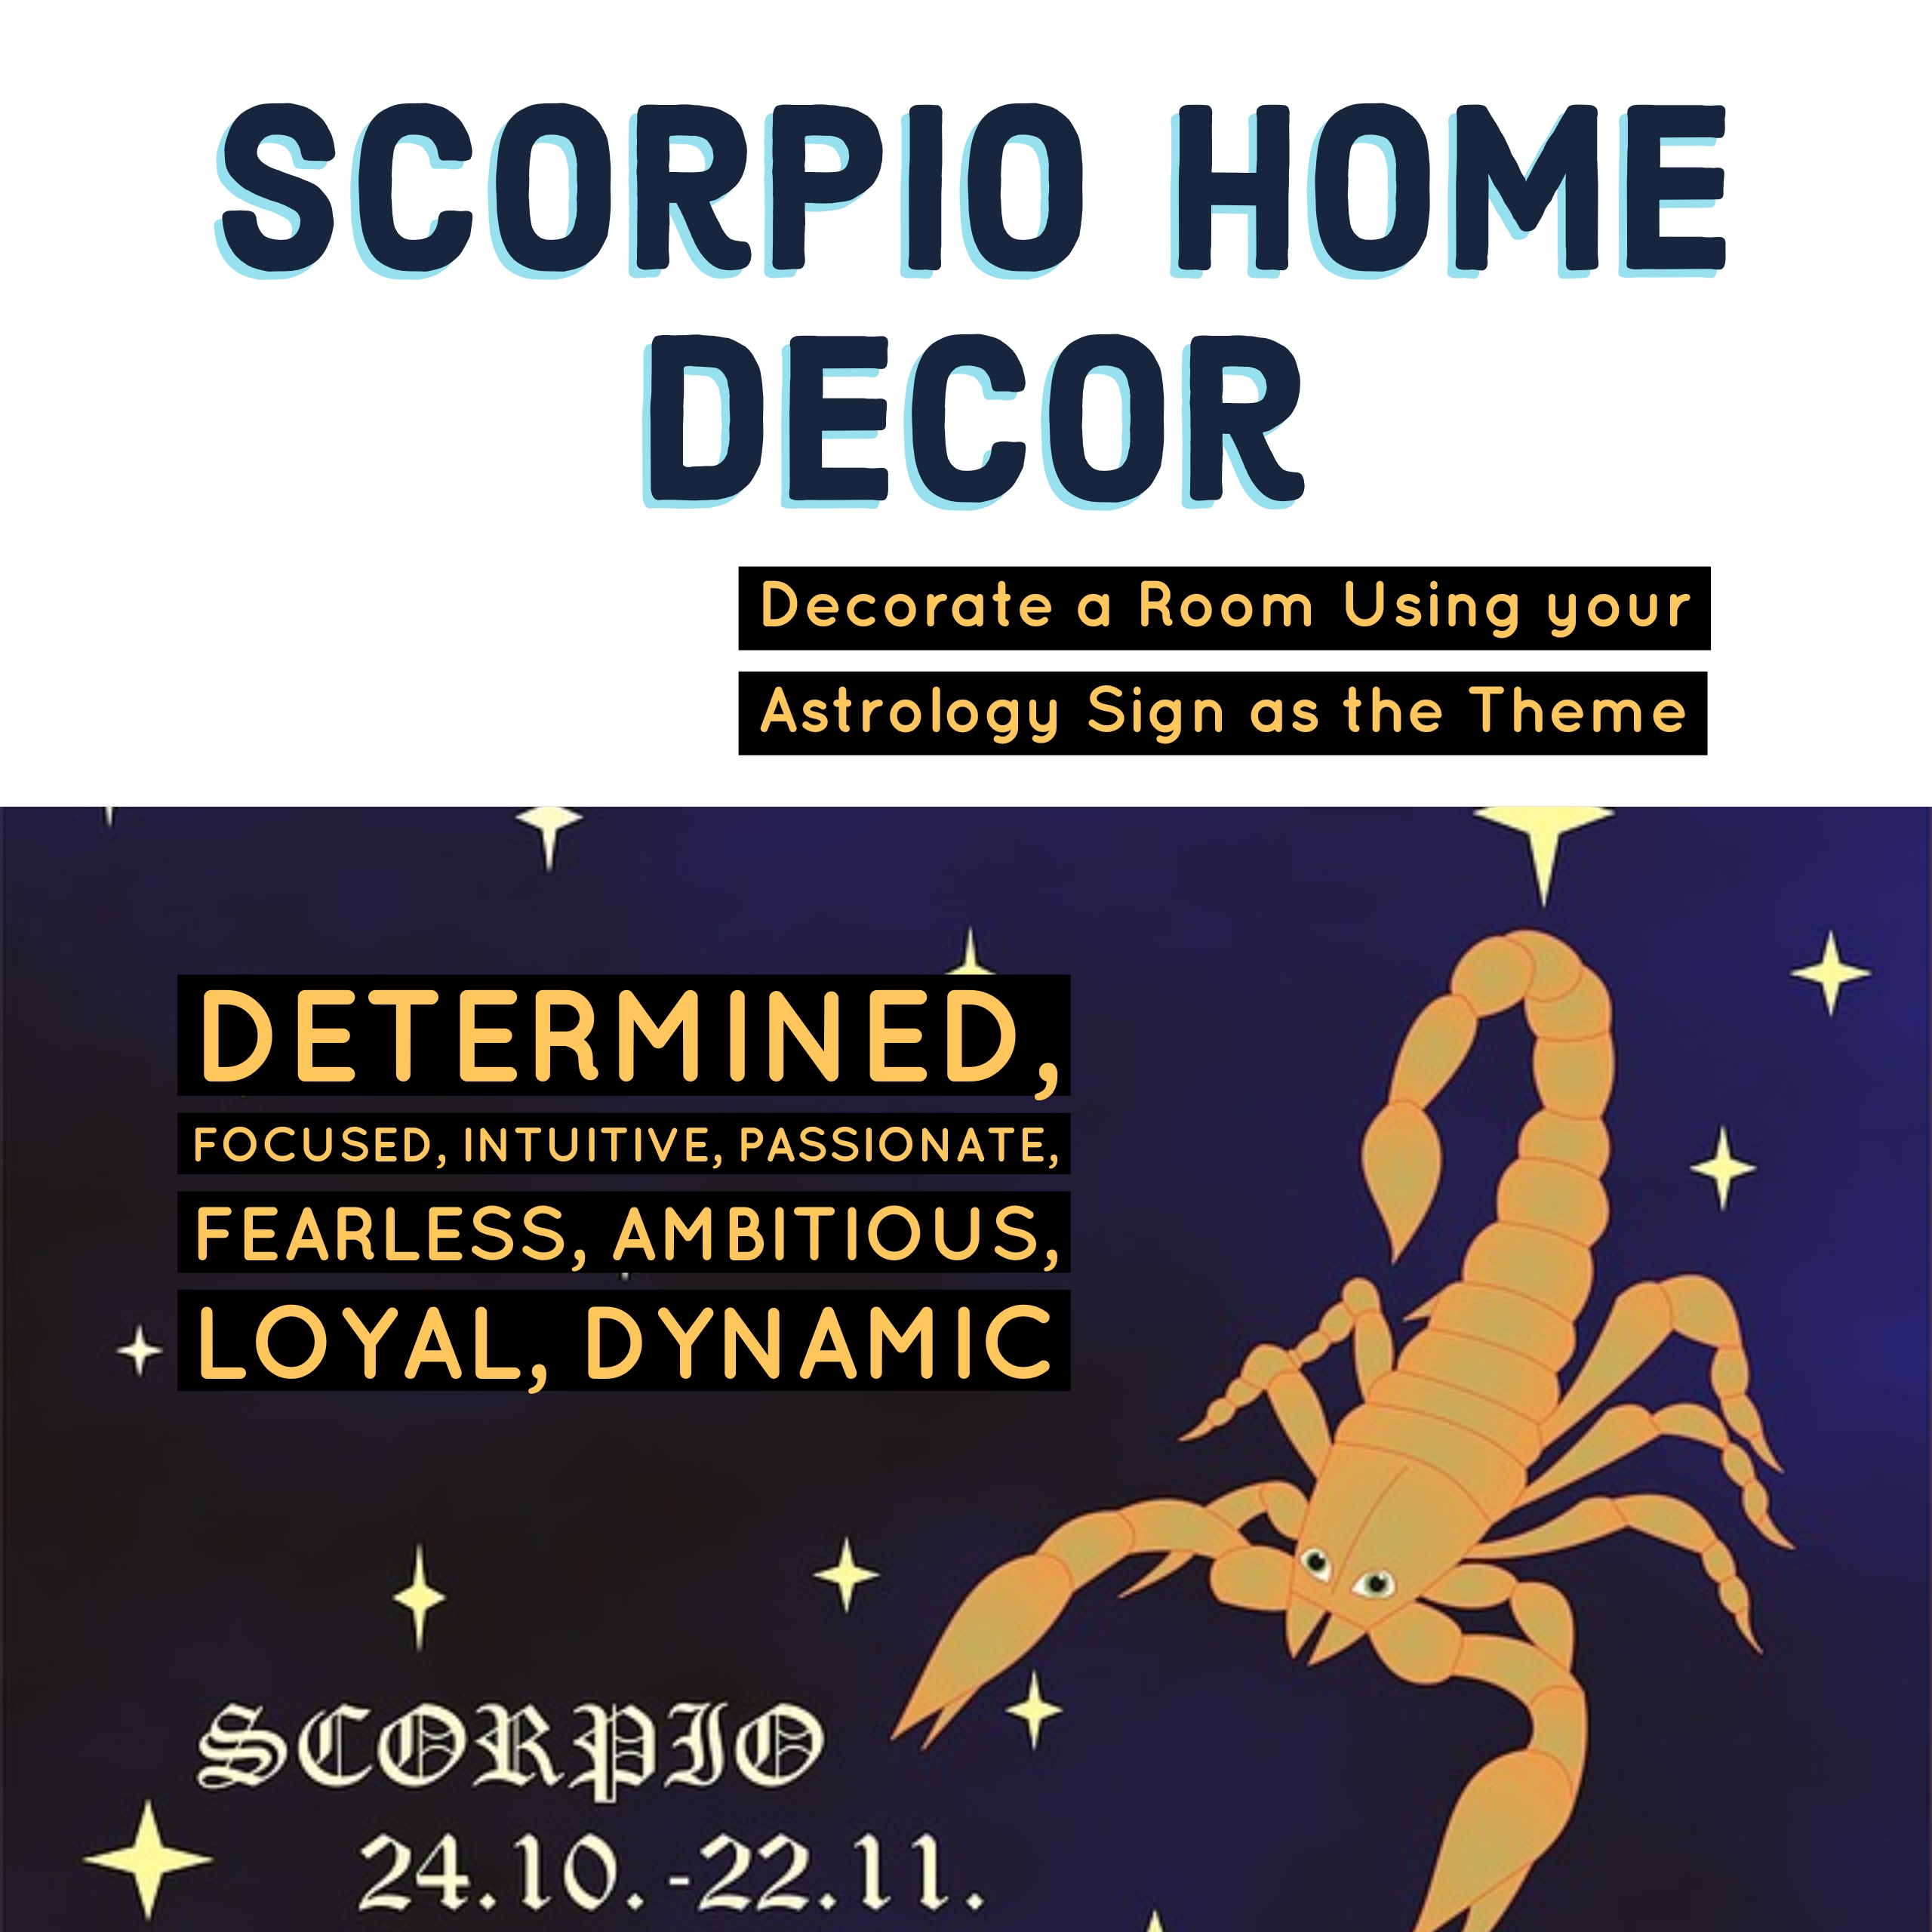 Scorpio Home Decor